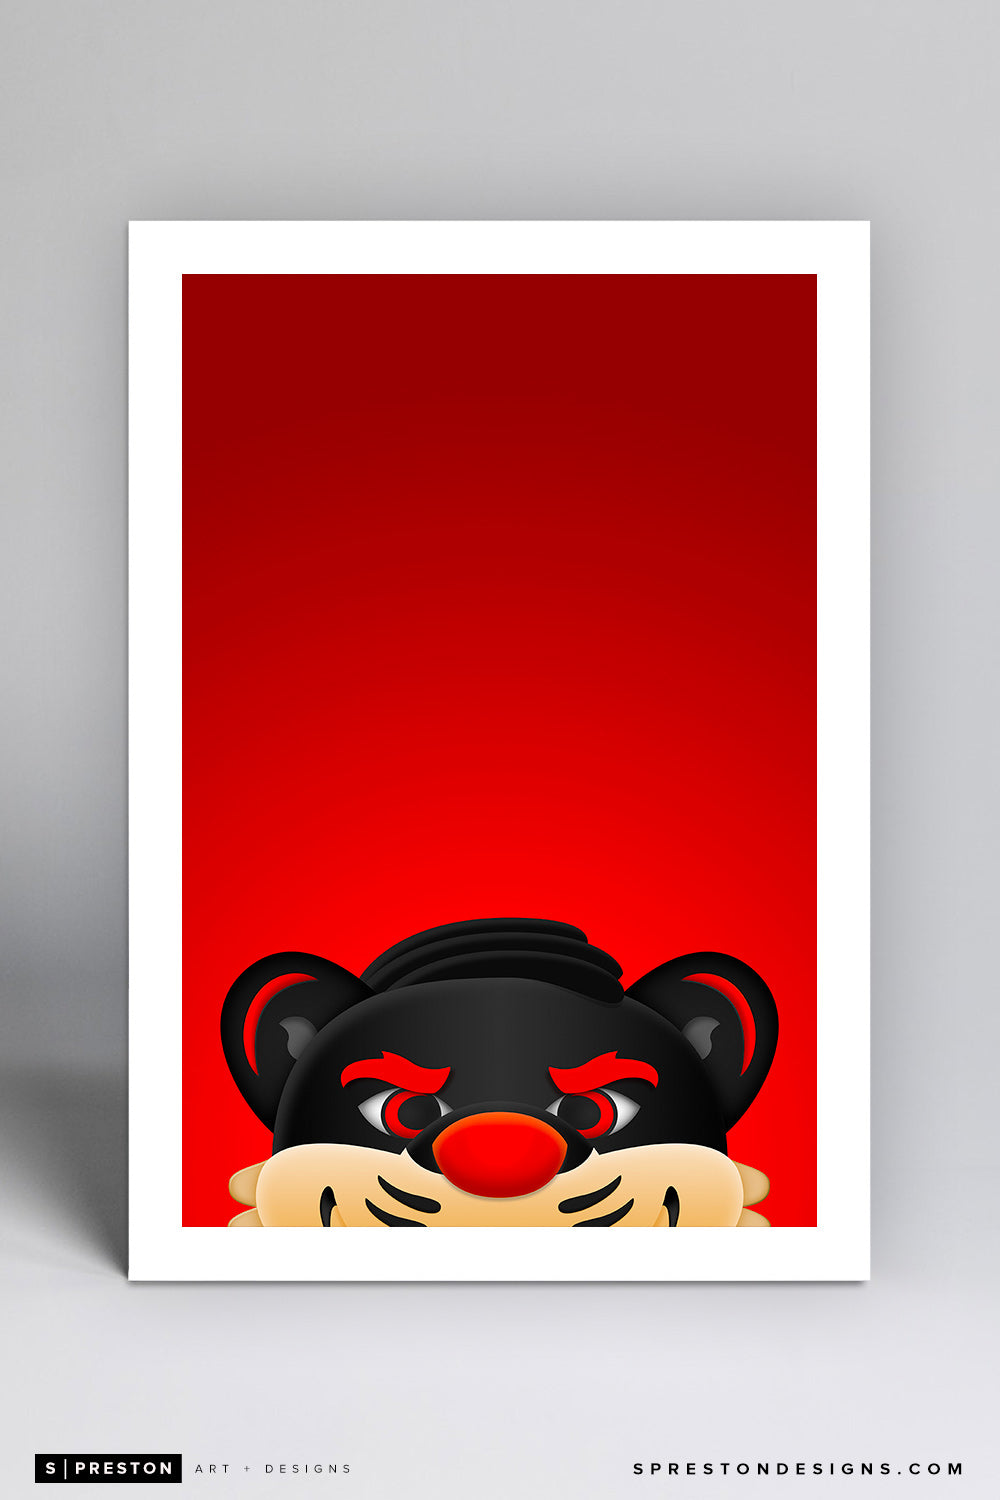 Minimalist Bearcats - University of Cincinnati - University of Cincinnati - S. Preston